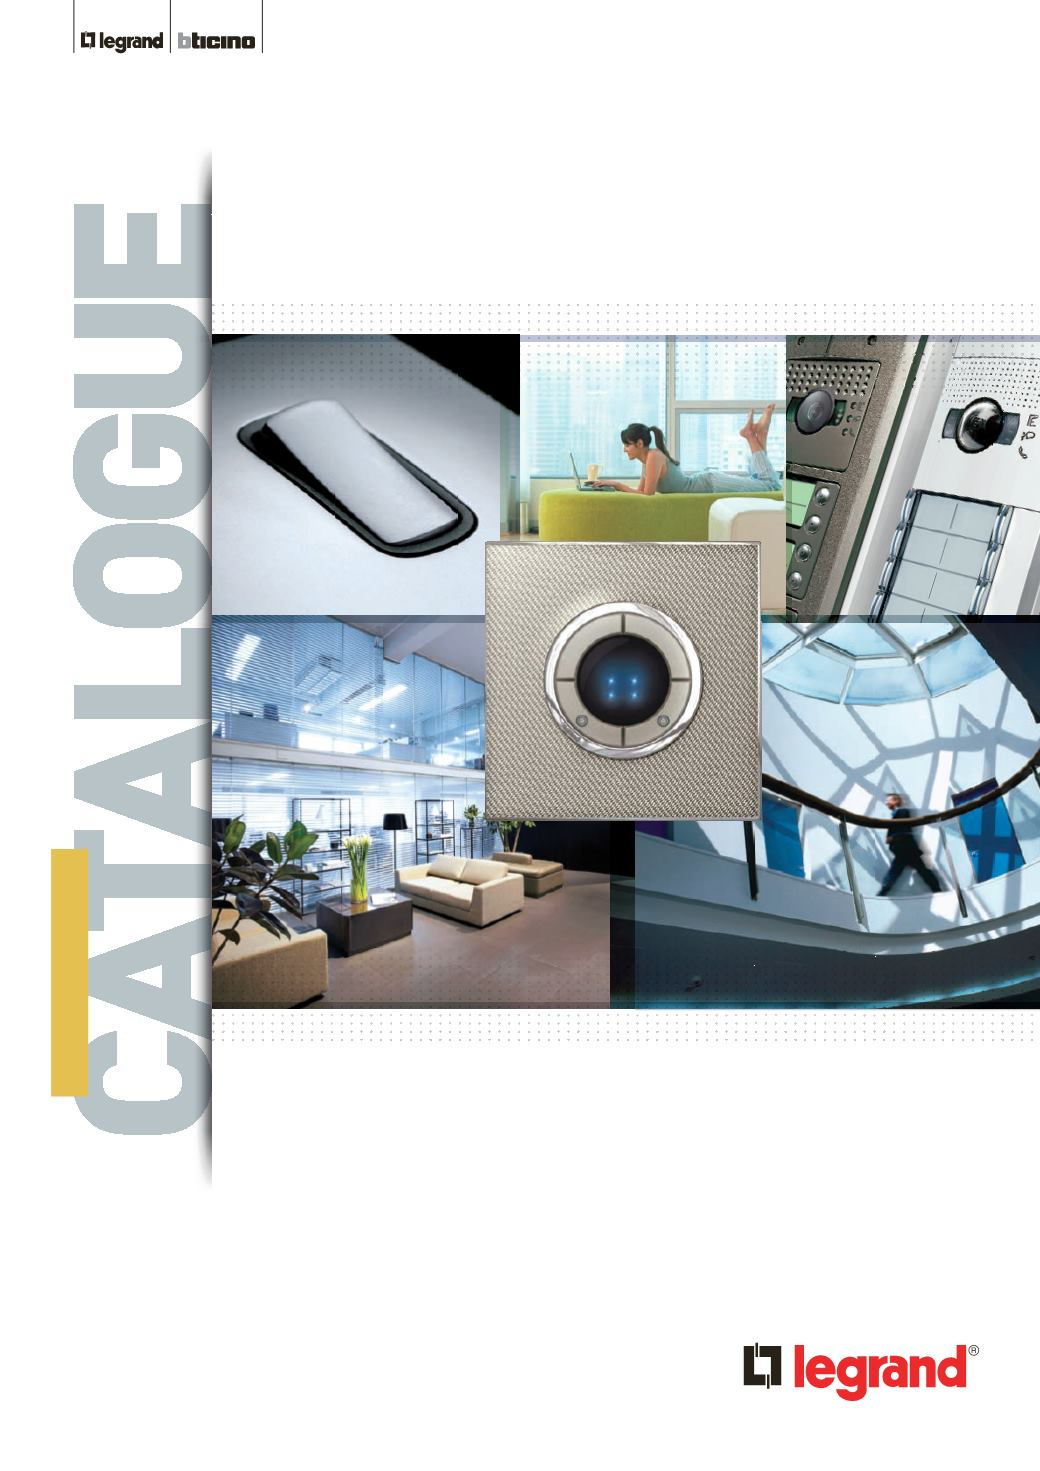 legrand wiring devices catalogue 2012. Black Bedroom Furniture Sets. Home Design Ideas